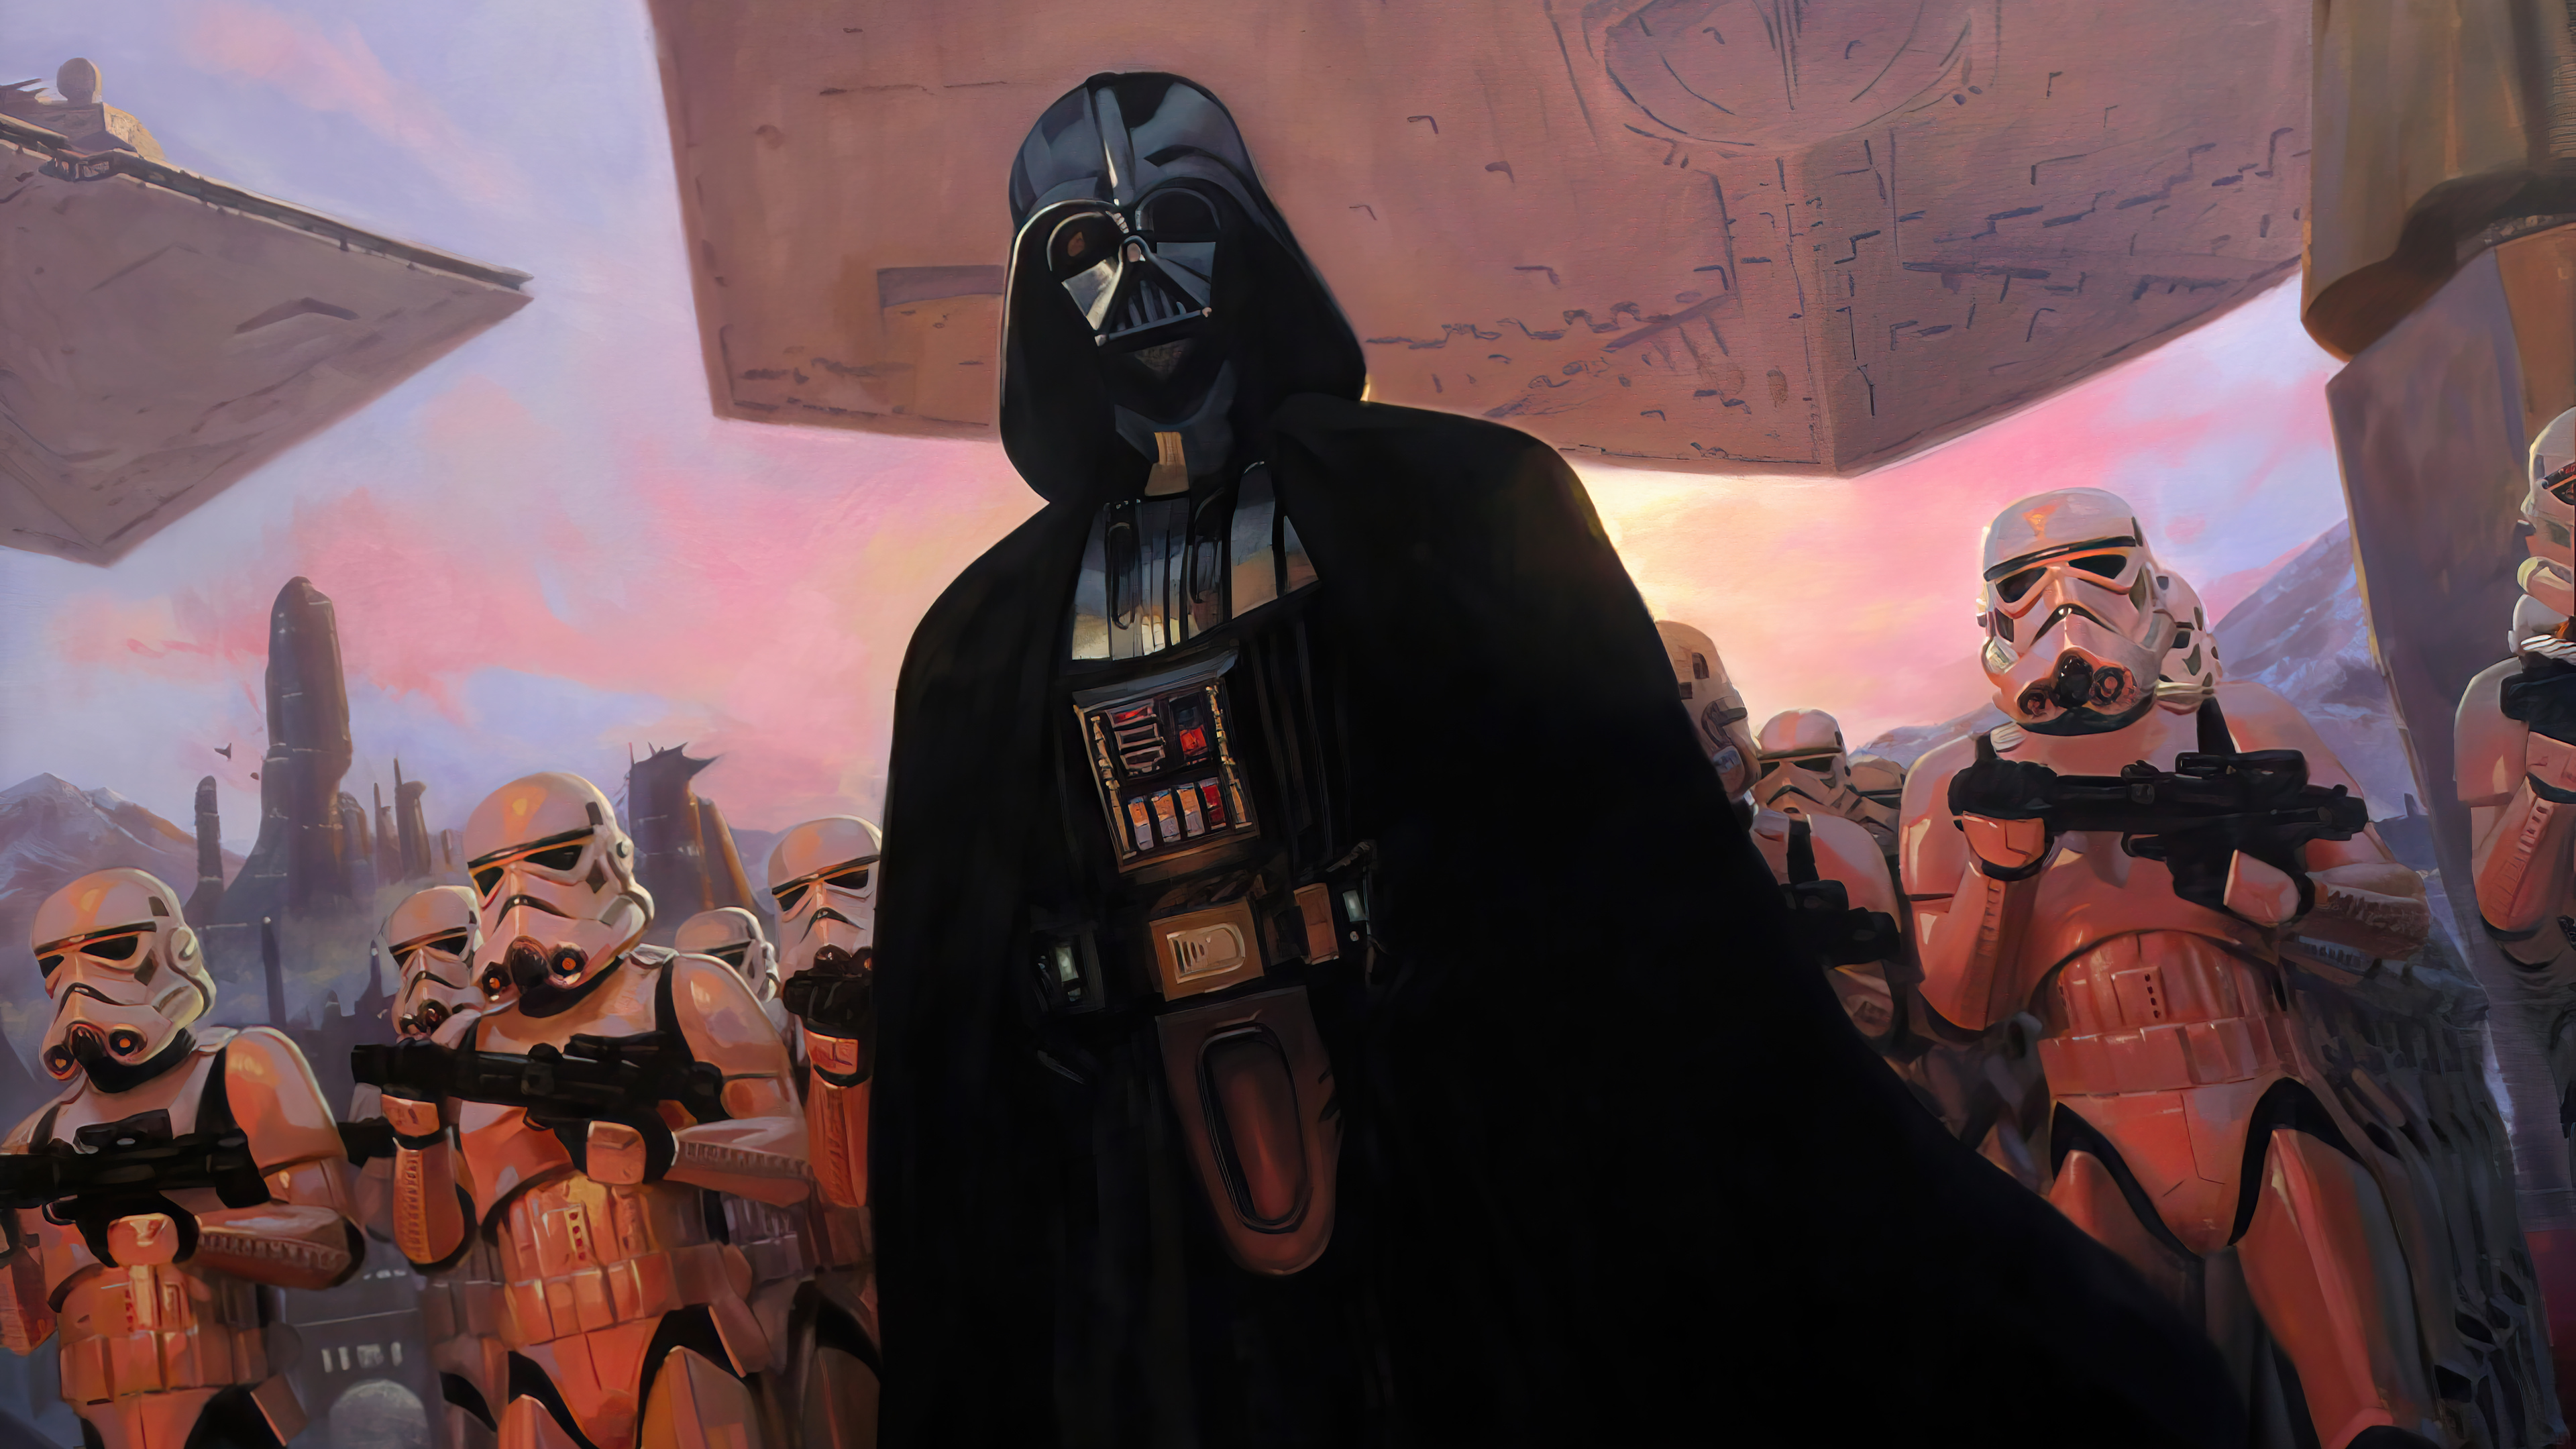 Wallpaper Darth Vader with Stormtroopers